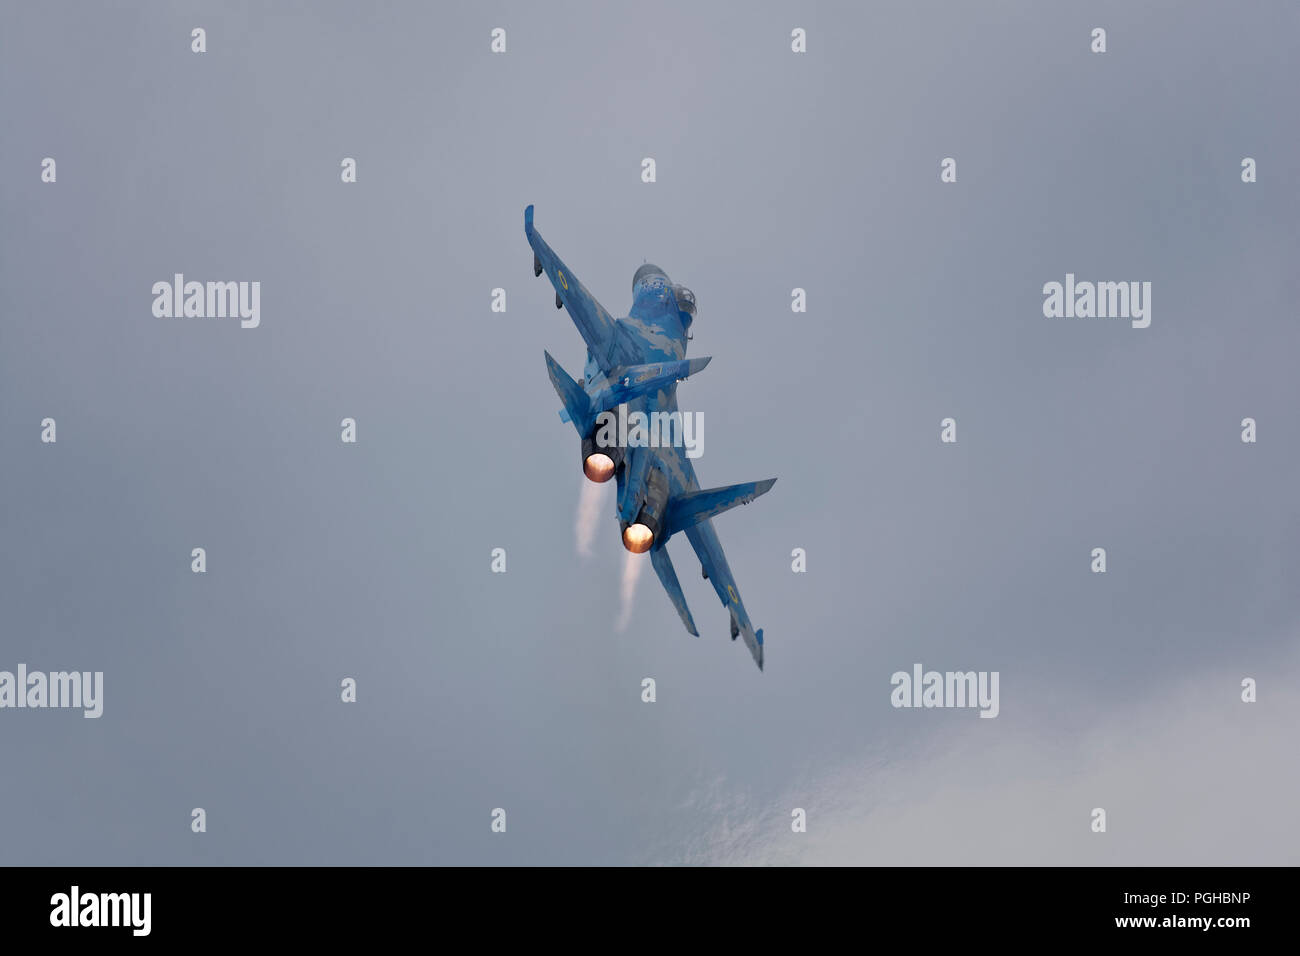 An impressive display of aviation power and manoeuvrability from the Ukrainian Air Force Sukhoi SU-27 air superiority jet fighter at the RIAT - Stock Image